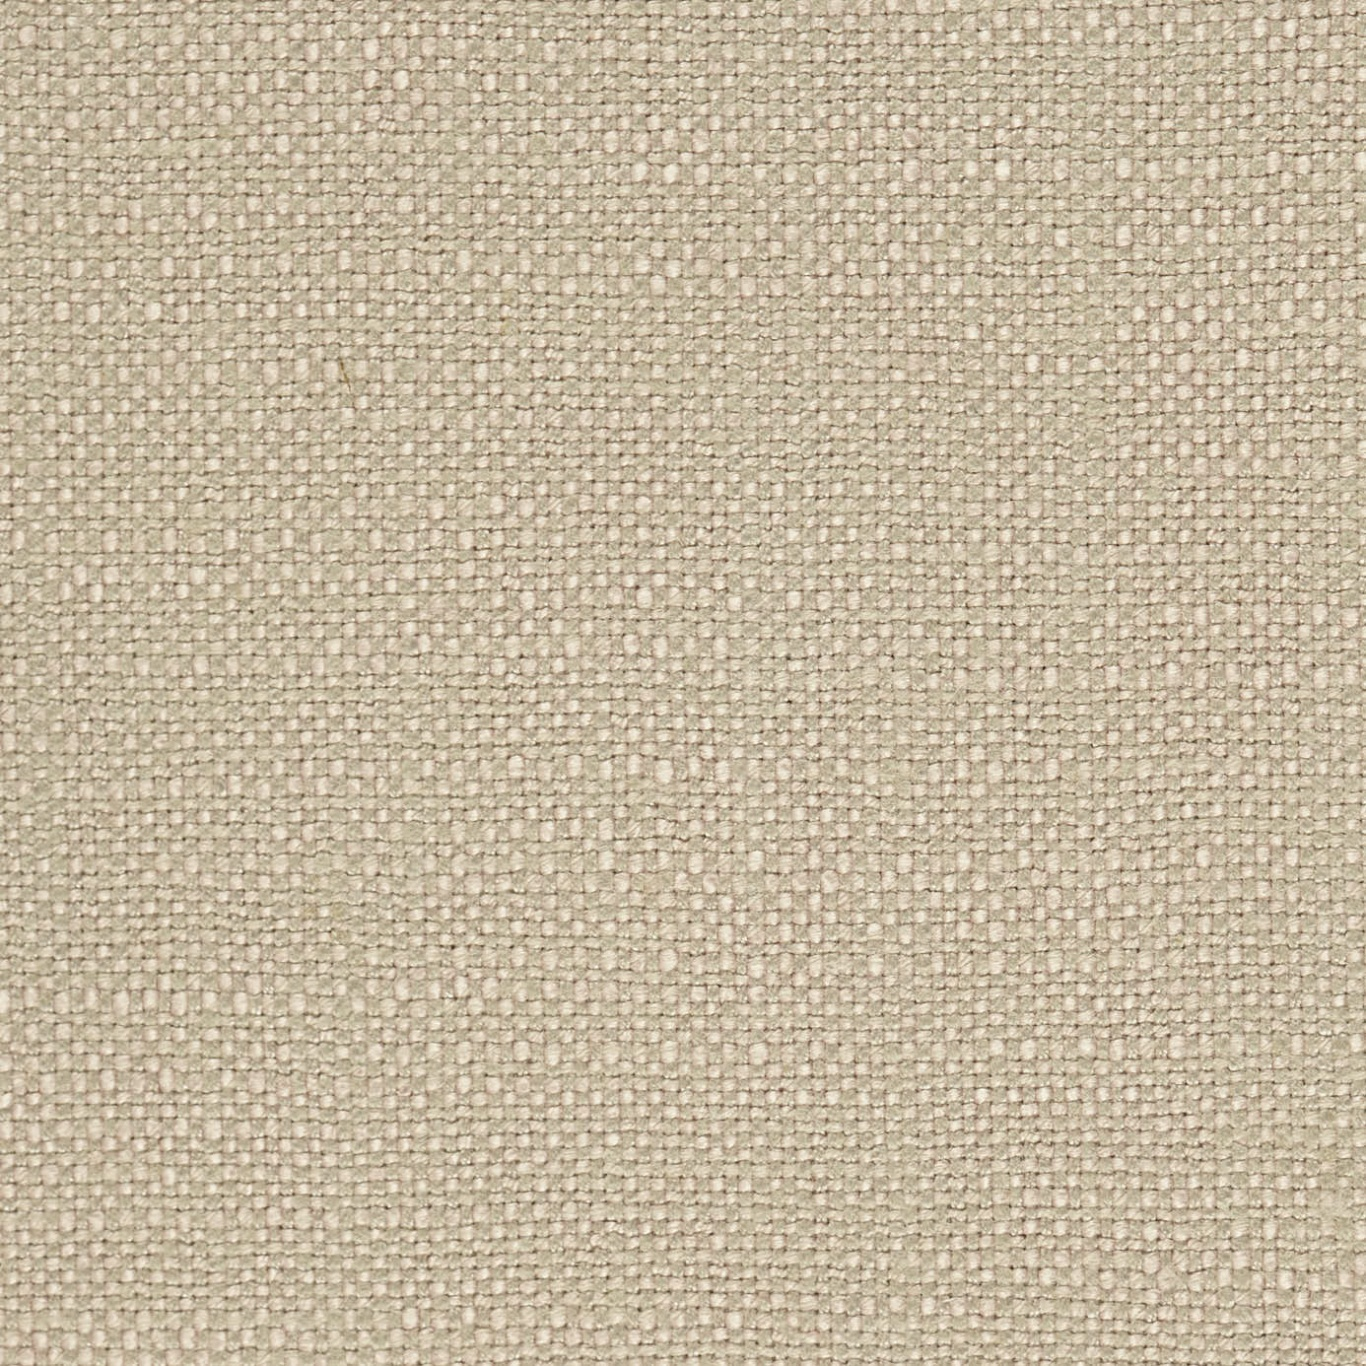 Image of Harlequin Fission Nude Fabric 440152